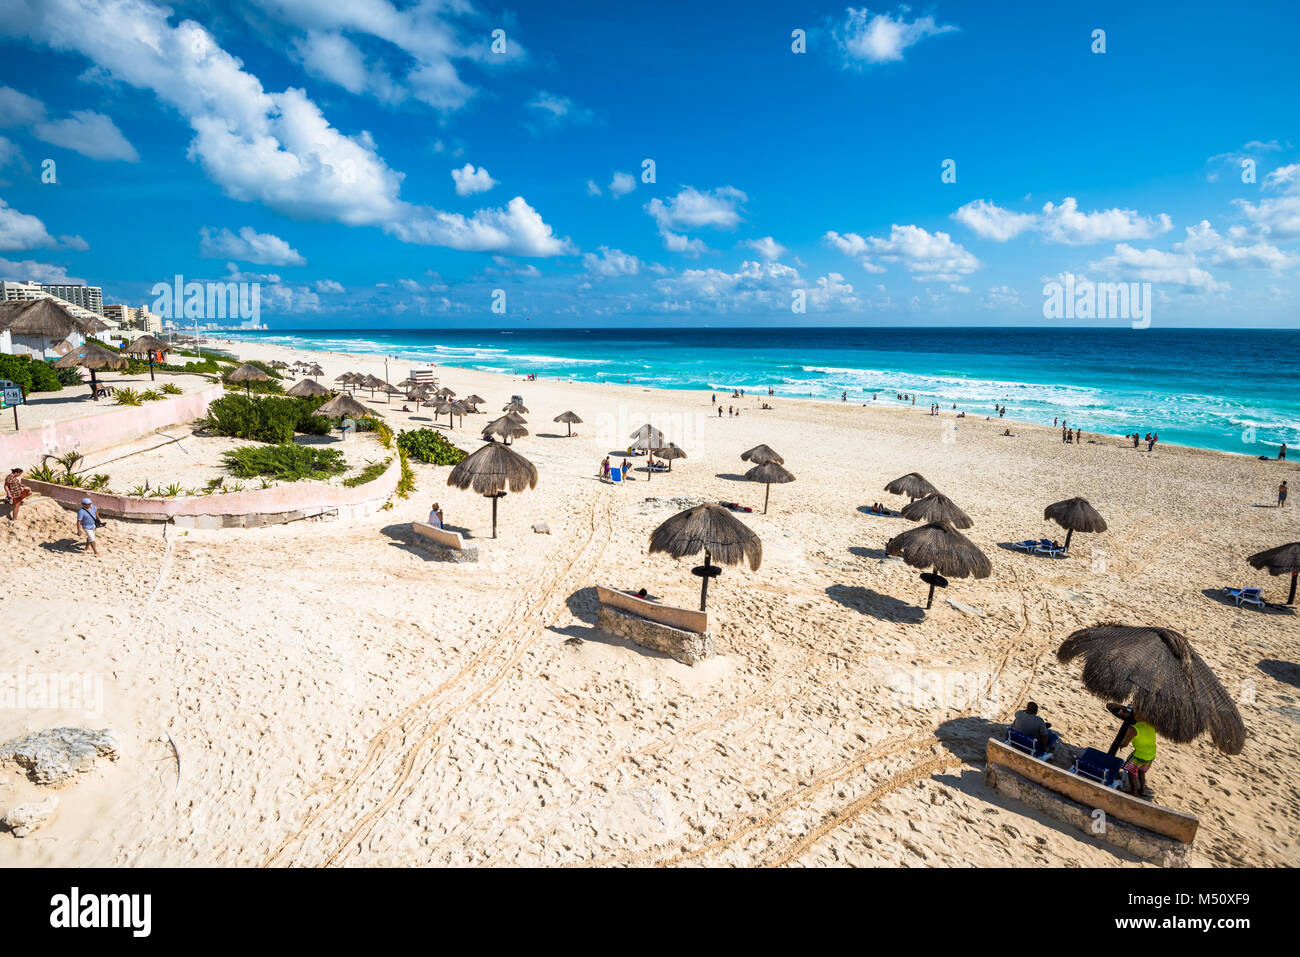 Spiaggia di Cancun panorama, Messico Foto Stock